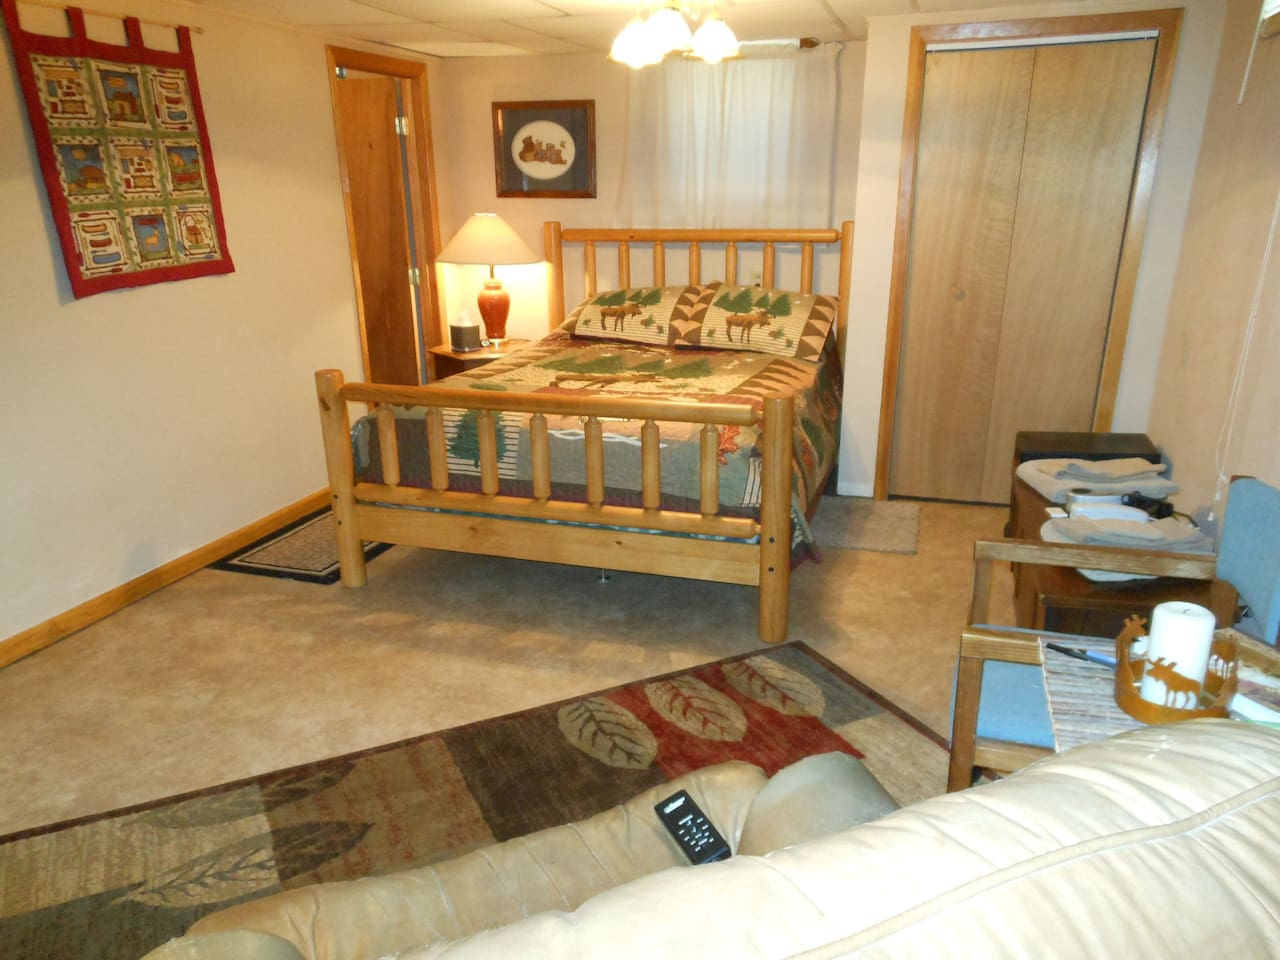 Moose & bear motif, with two windows, bathroom, shower & sauna through door on left. Private & spacious with heat/massage recliner one one side of bedroom also! Cot under bed for 3rd person if needed.